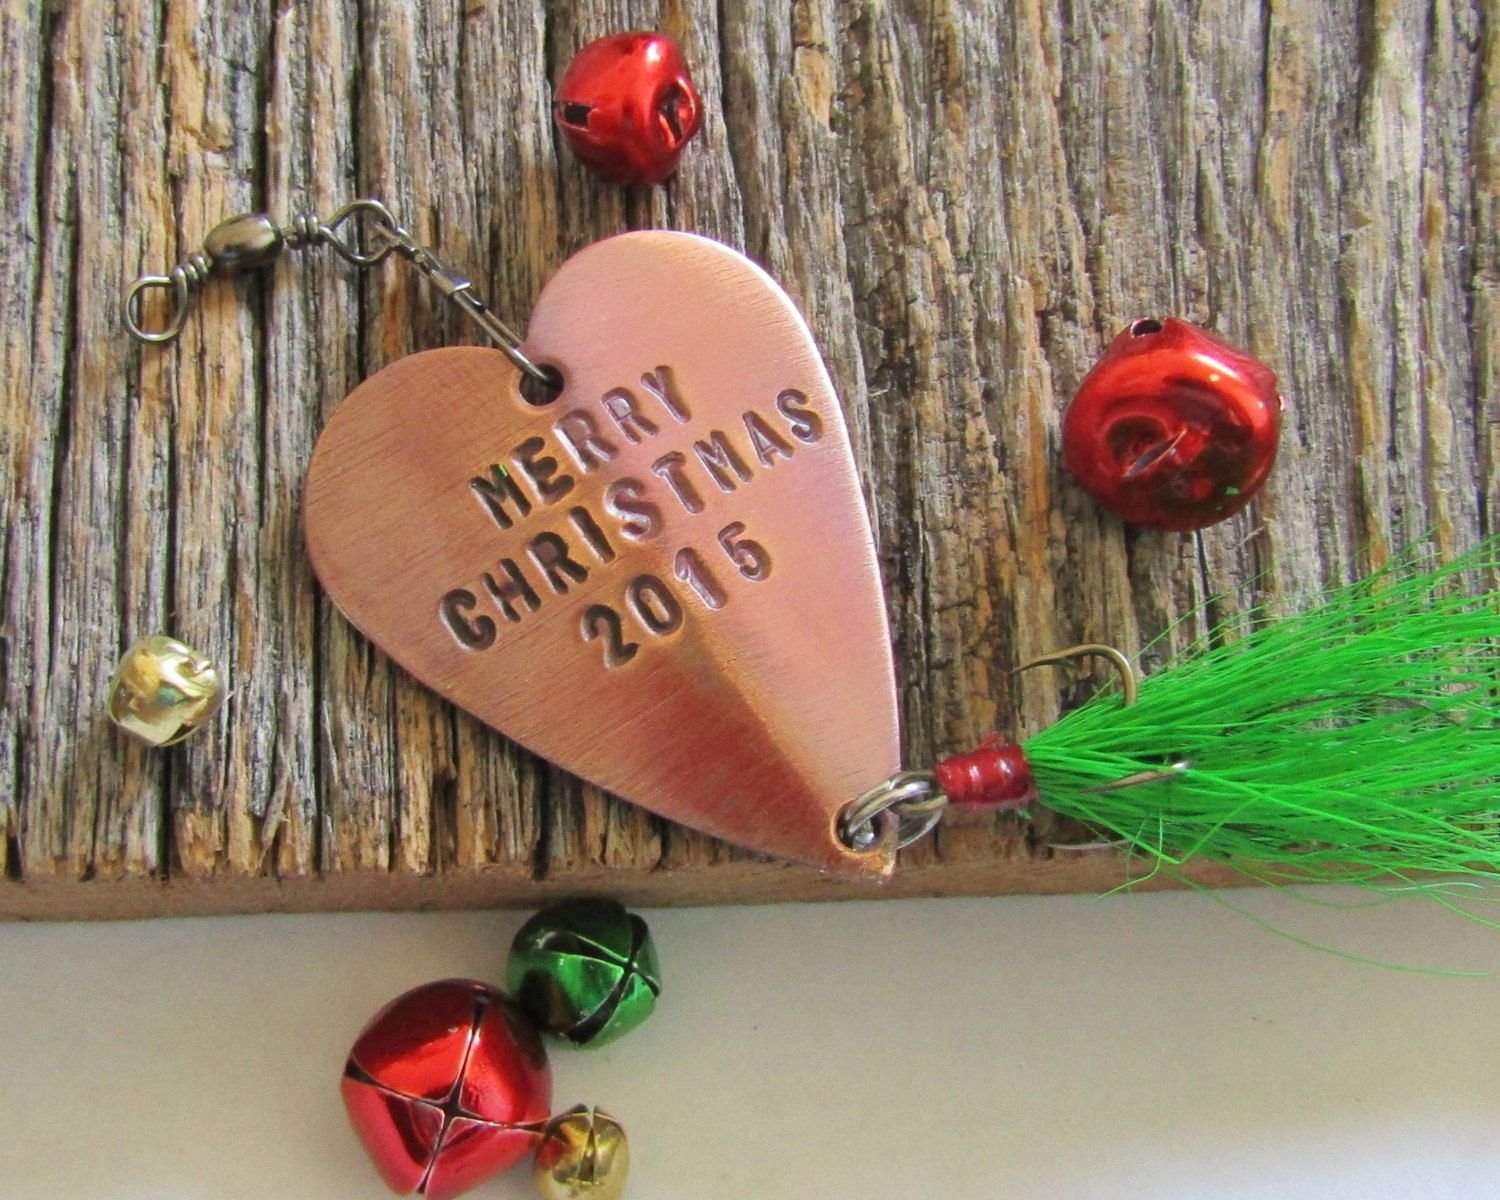 merry christmas fishing lure happy holidays personalized gift for boyfriends family fishing gift for christmas tree